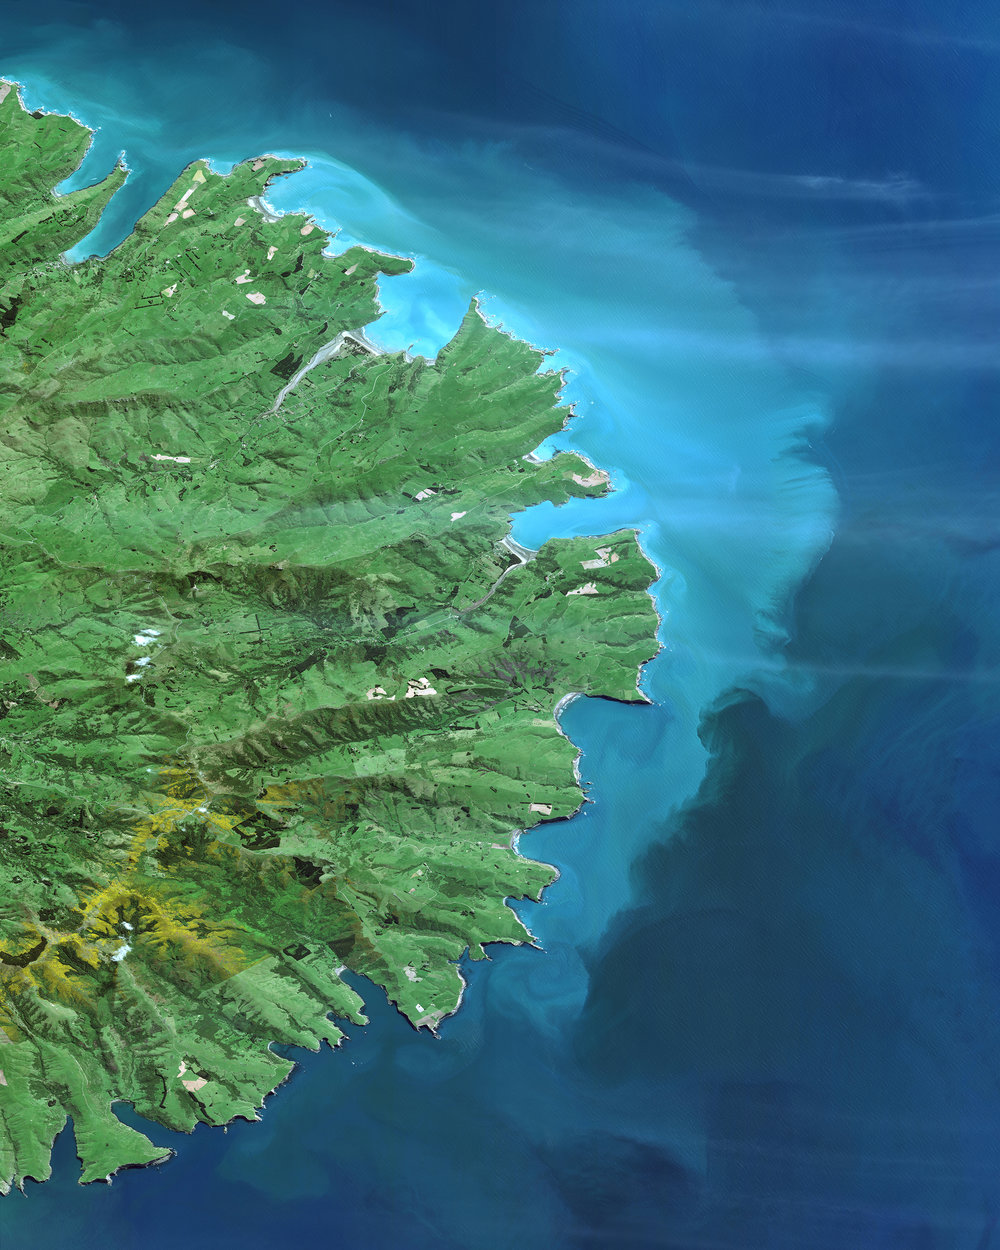 "Check out this amazing Overview of the Banks Peninsula, which juts off the east coast of New Zealand's South Island. The landmass, which is volcanic in origin, has an area of roughly 440 square miles (1,150 sq. km) and encompasses two large harbors and many small bays and coves. It is believed that forests once covered 98% of the Banks Peninsula, yet — as the result of deforestation — less than 2% of the native forest cover remains today.  43°45'00.0""S, 172°49'58.8""E  Source imagery: DigitalGlobe"